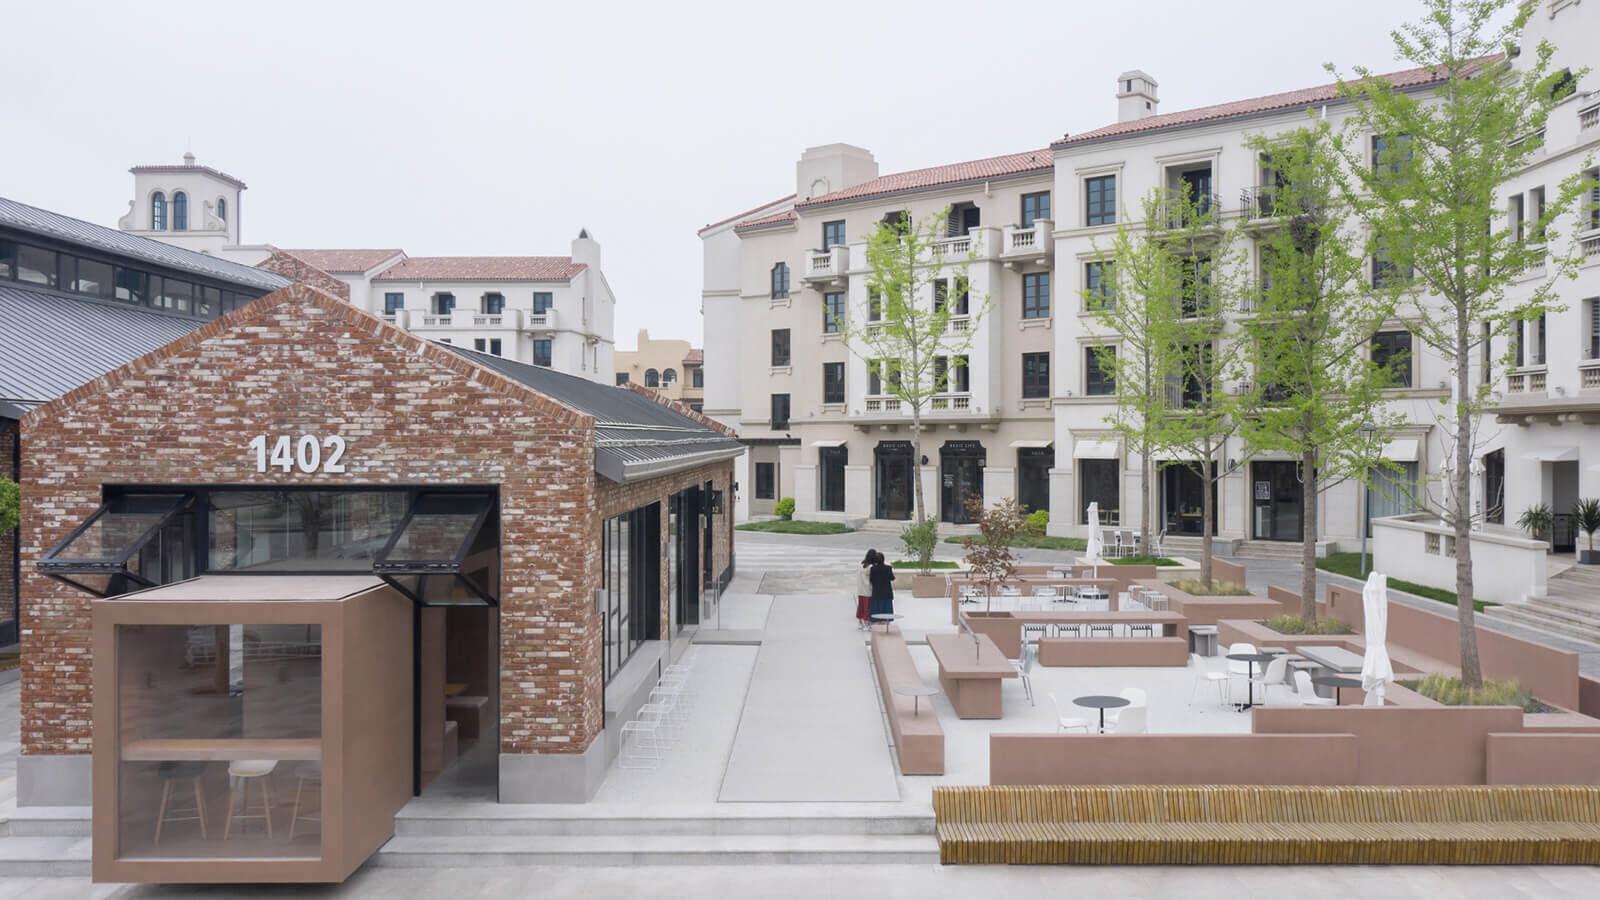 Exterior view of the building and the outdoor seating area